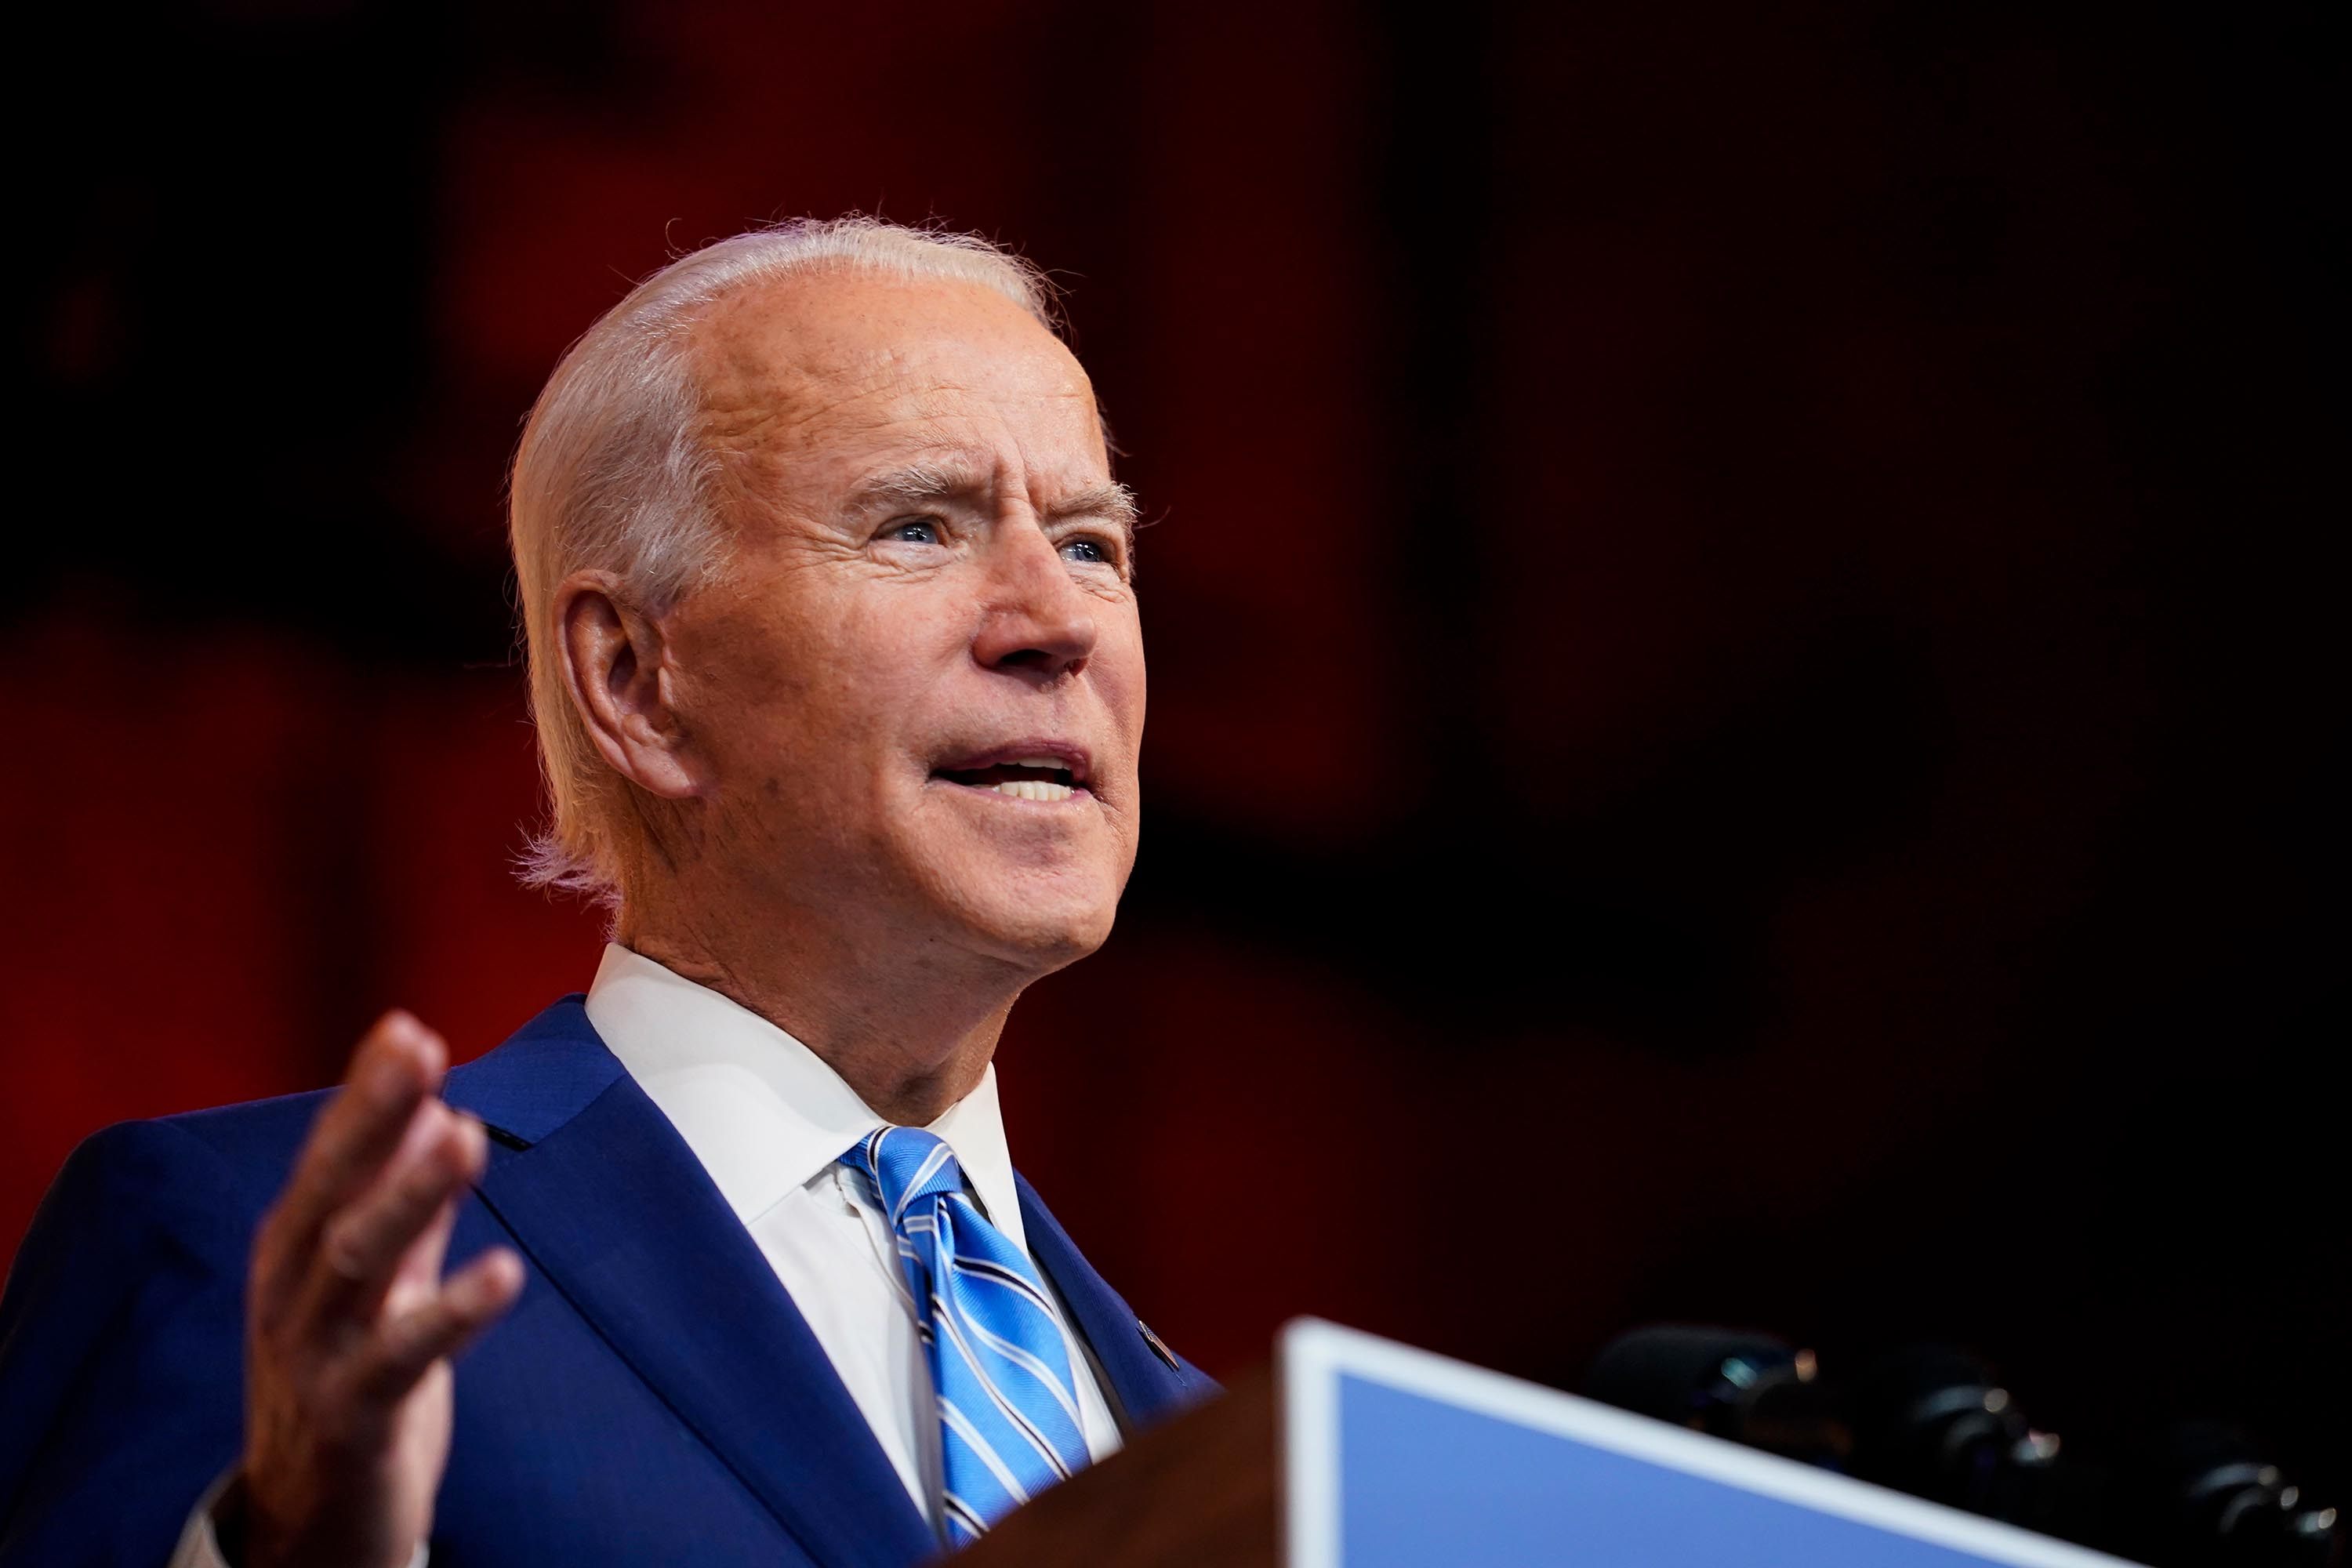 Biden's doctor says he has hairline fractures in his foot after slipping while playing with his dog